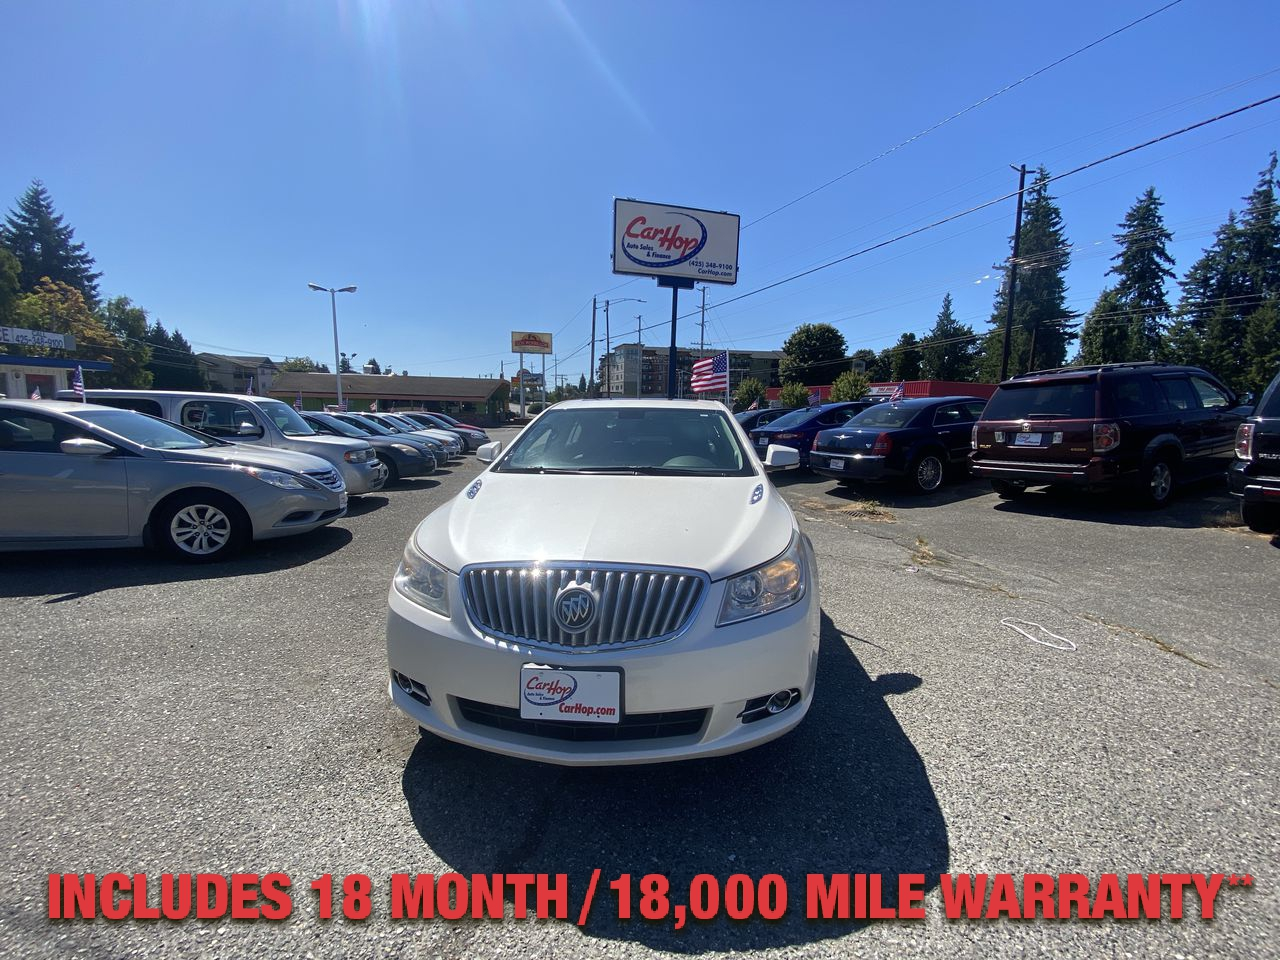 Pre-Owned 2010 BUICK LACROSSE CXL Sedan